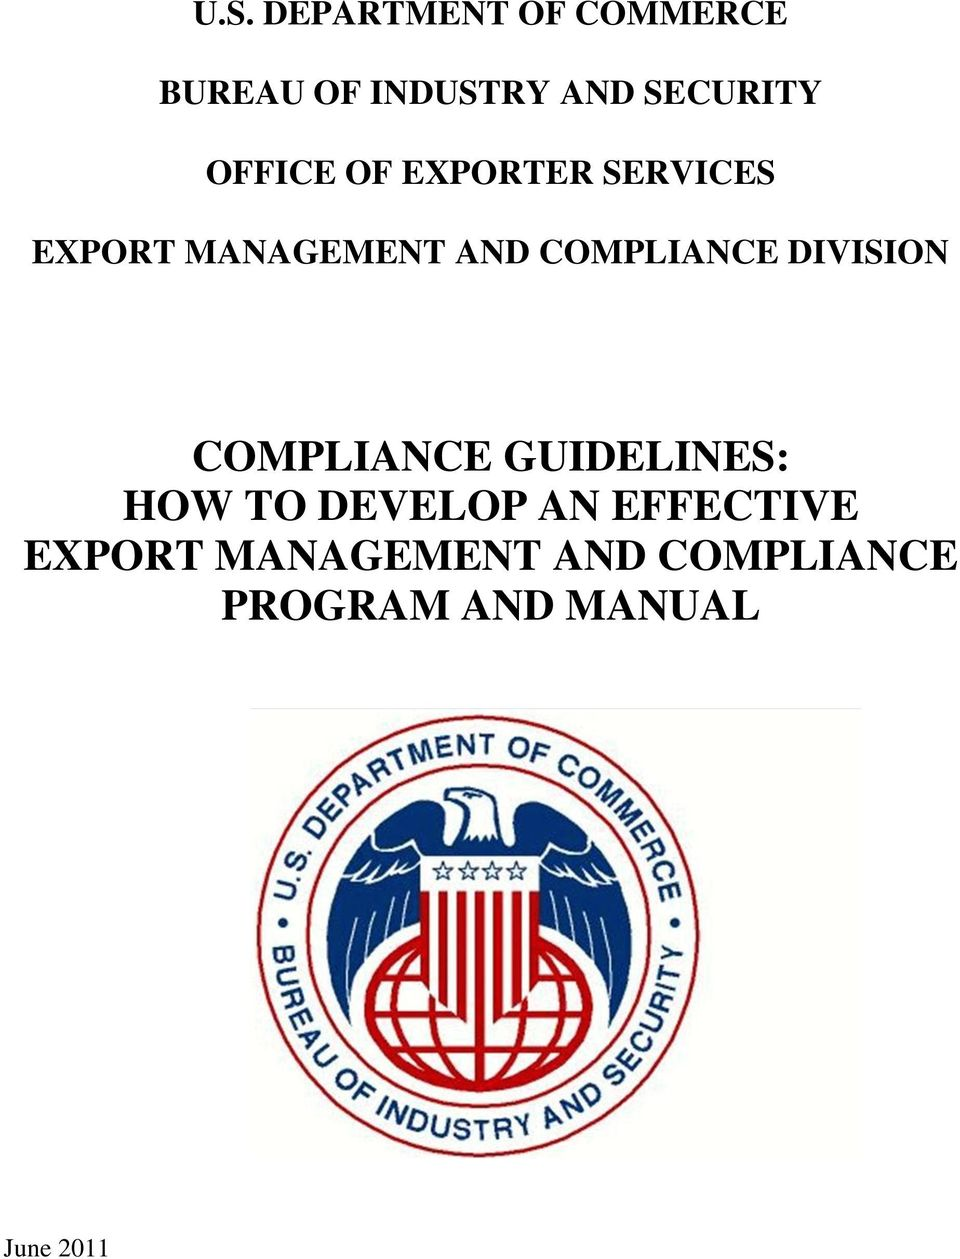 DIVISION COMPLIANCE GUIDELINES: HOW TO DEVELOP AN EFFECTIVE